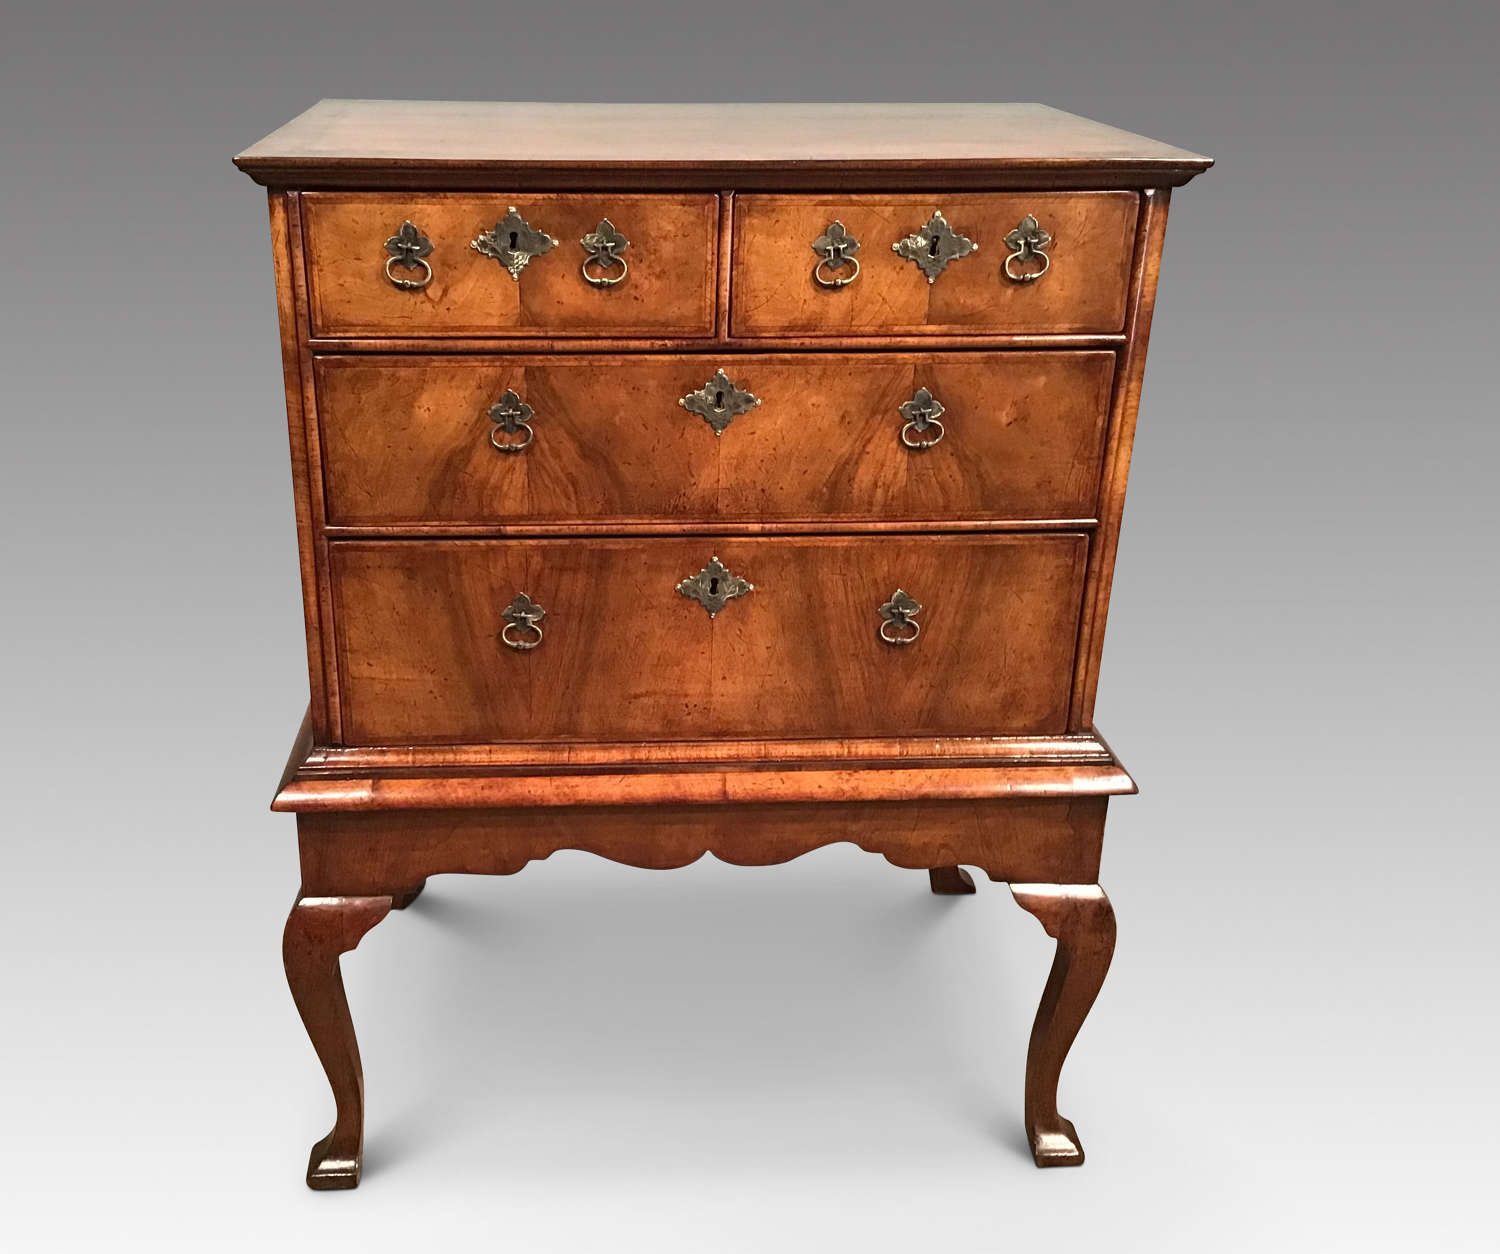 Early 18th century walnut  chest on stand.